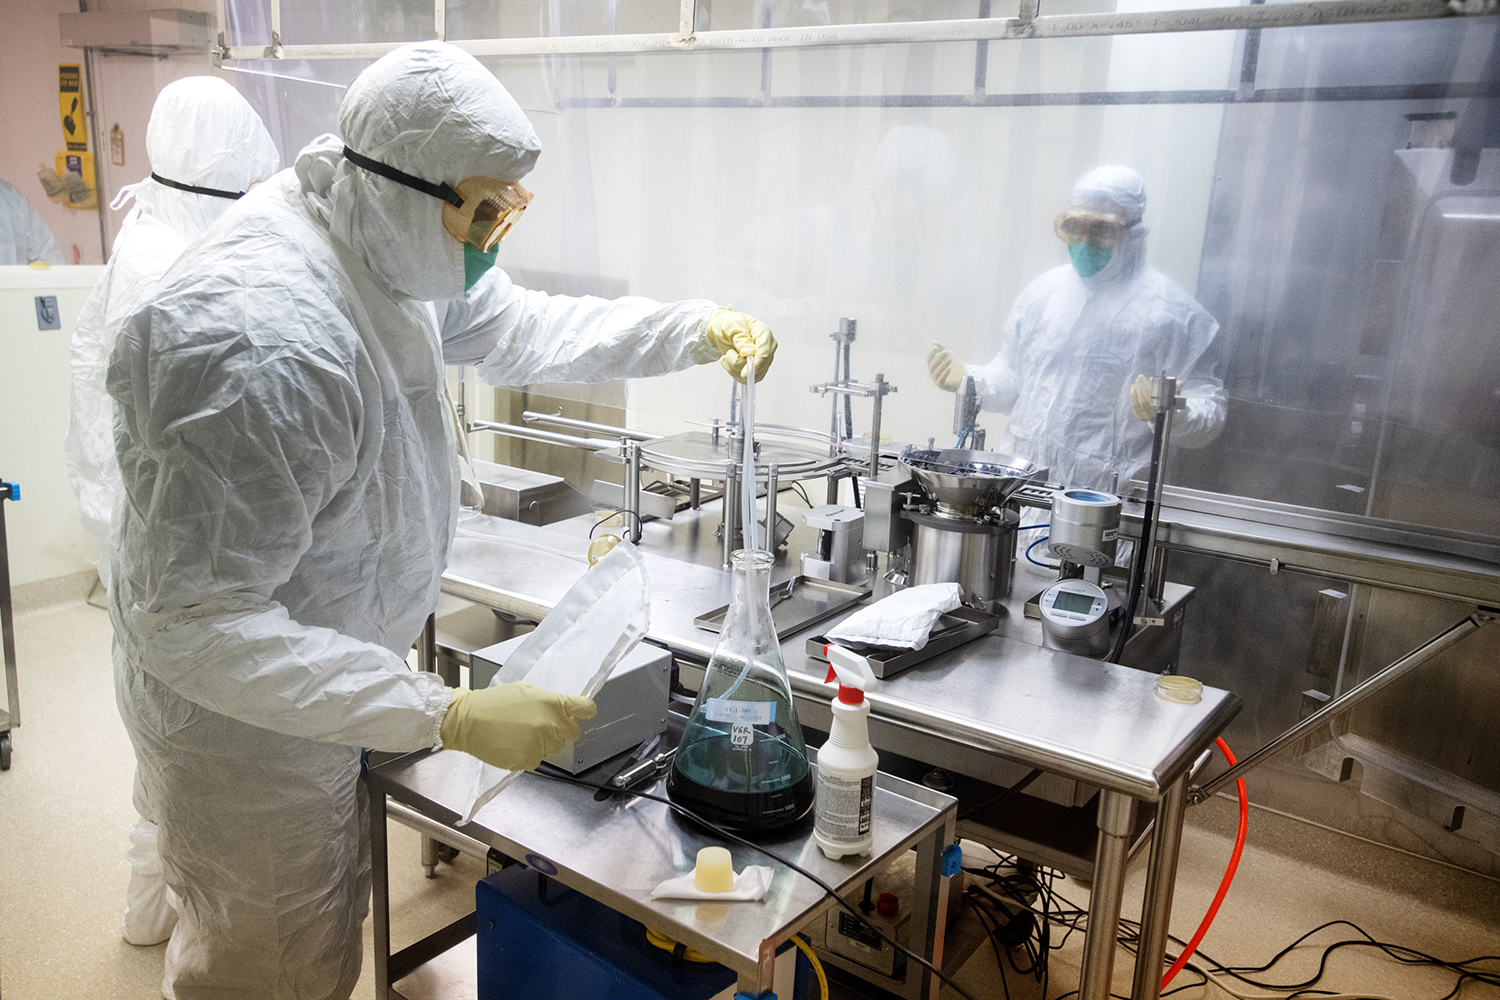 UI Pharmaceuticals personnel working in the building